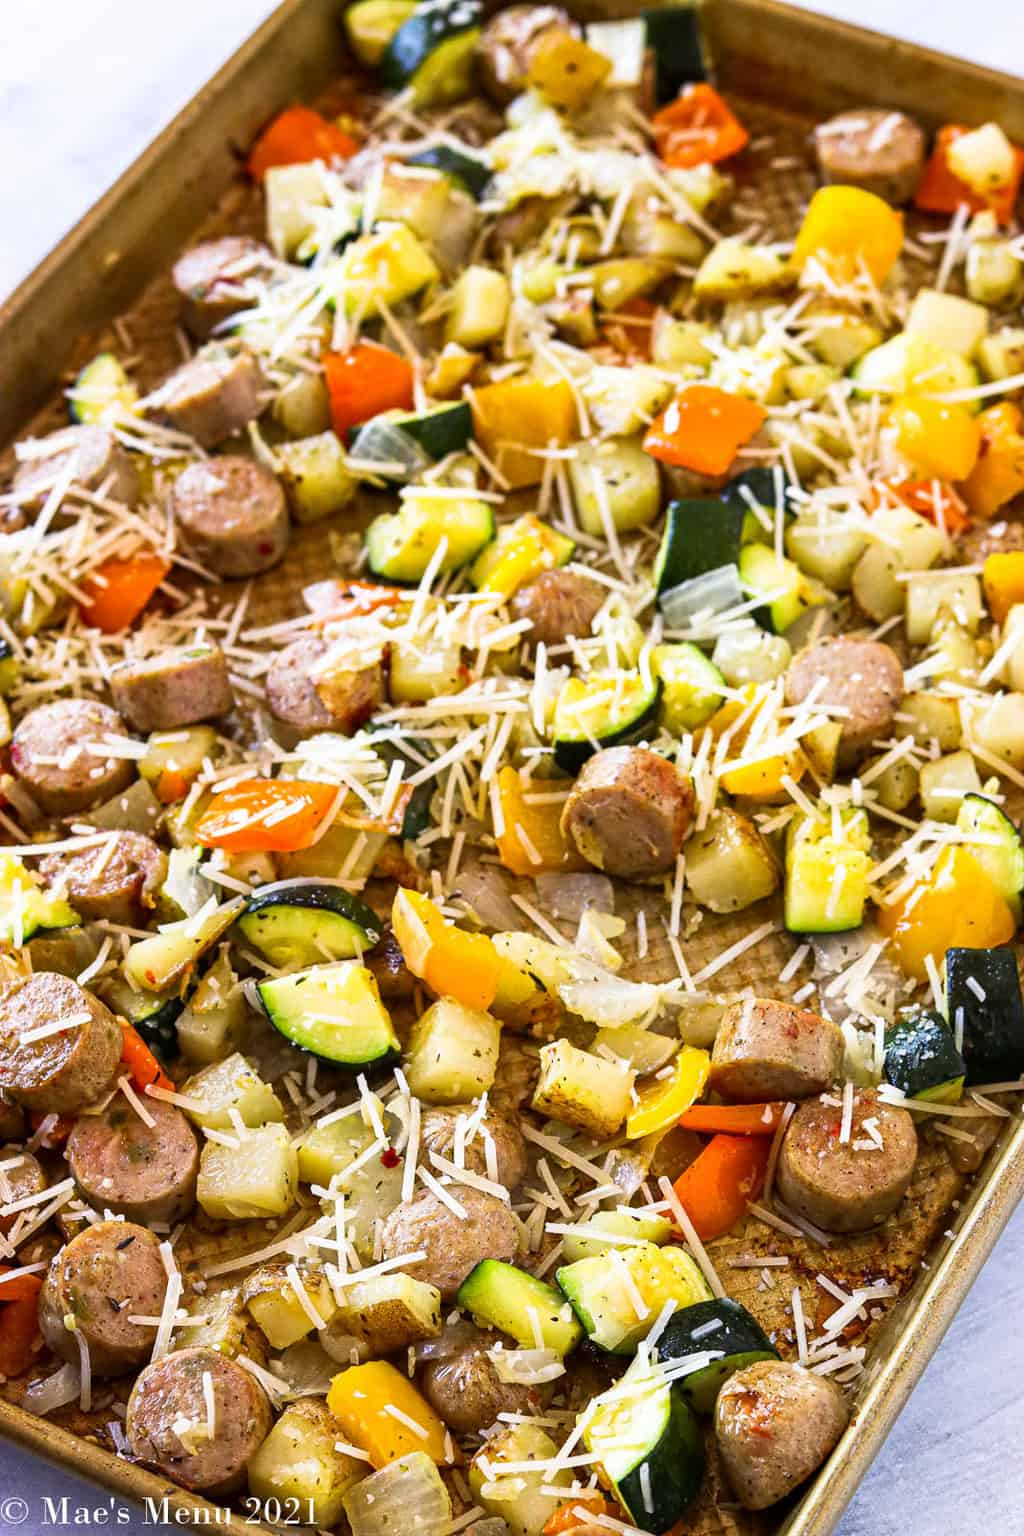 A side shot of a roasting pan with veggies, potatoes, sausage, and shredded parmesan cheese